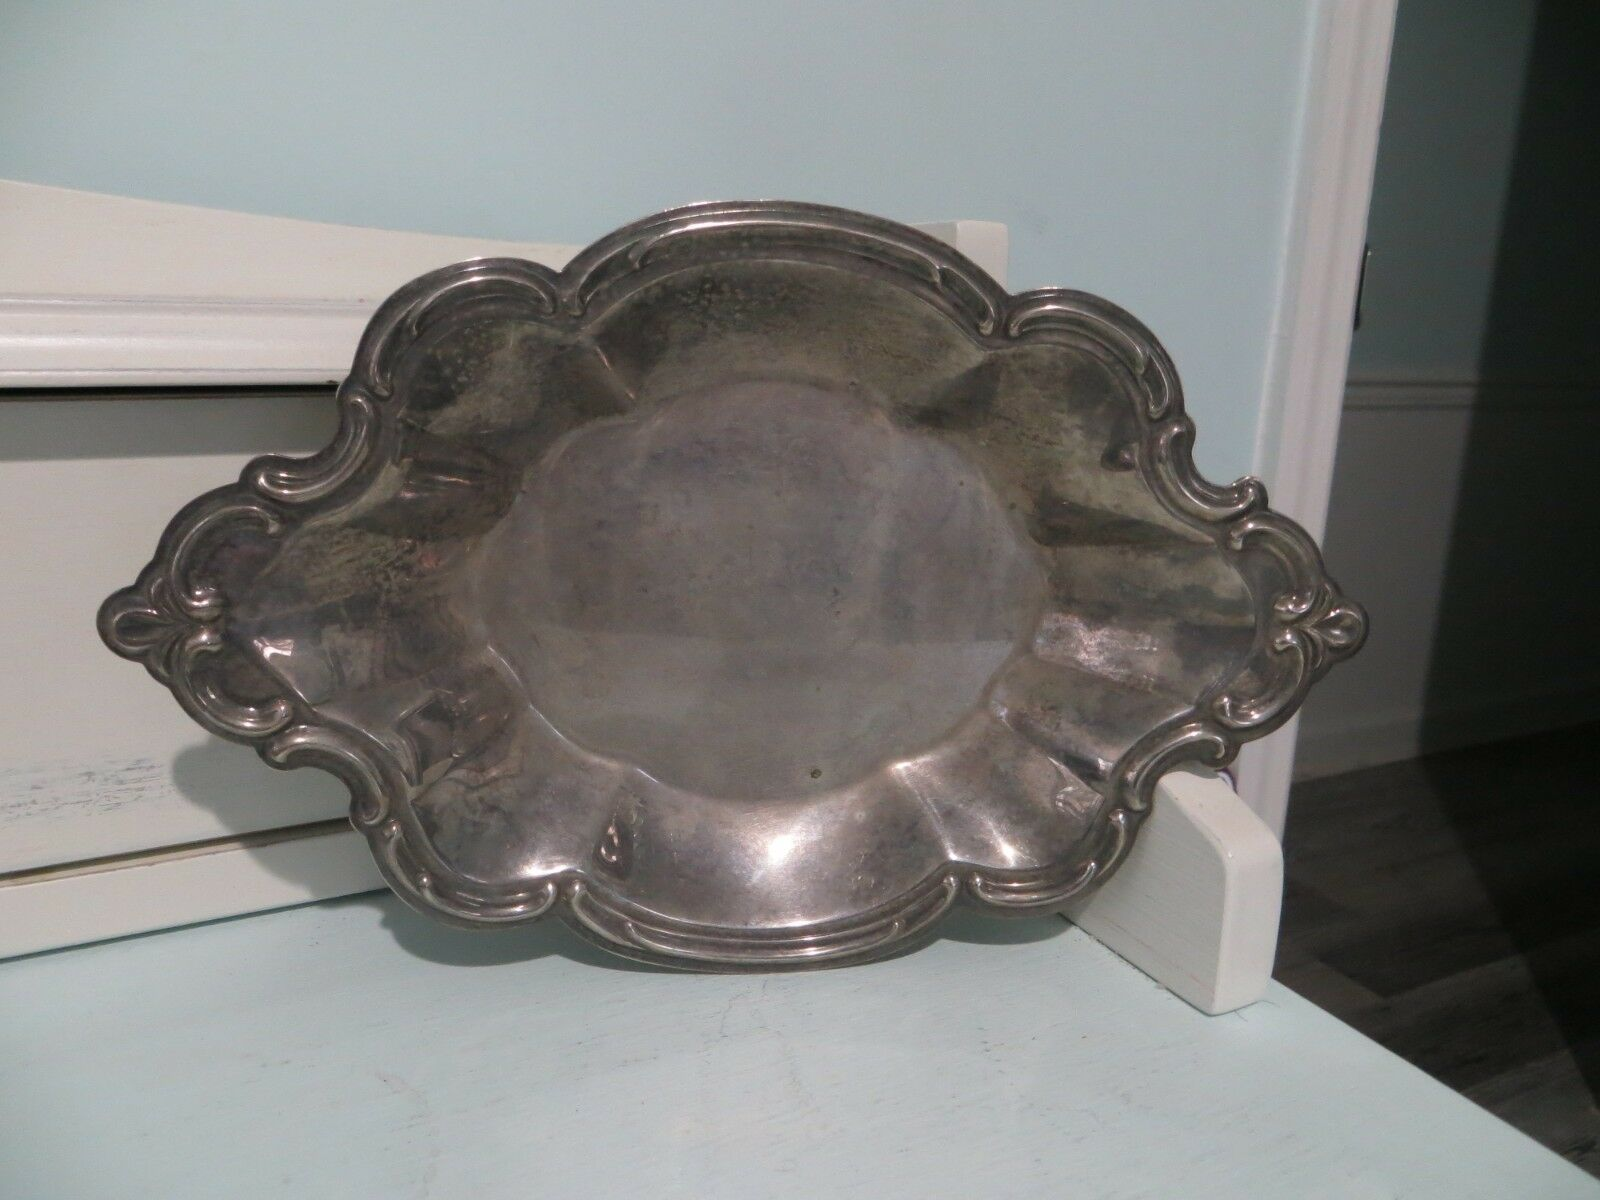 Vintage small silver nut/candy dish made by The International Silver Company image 2